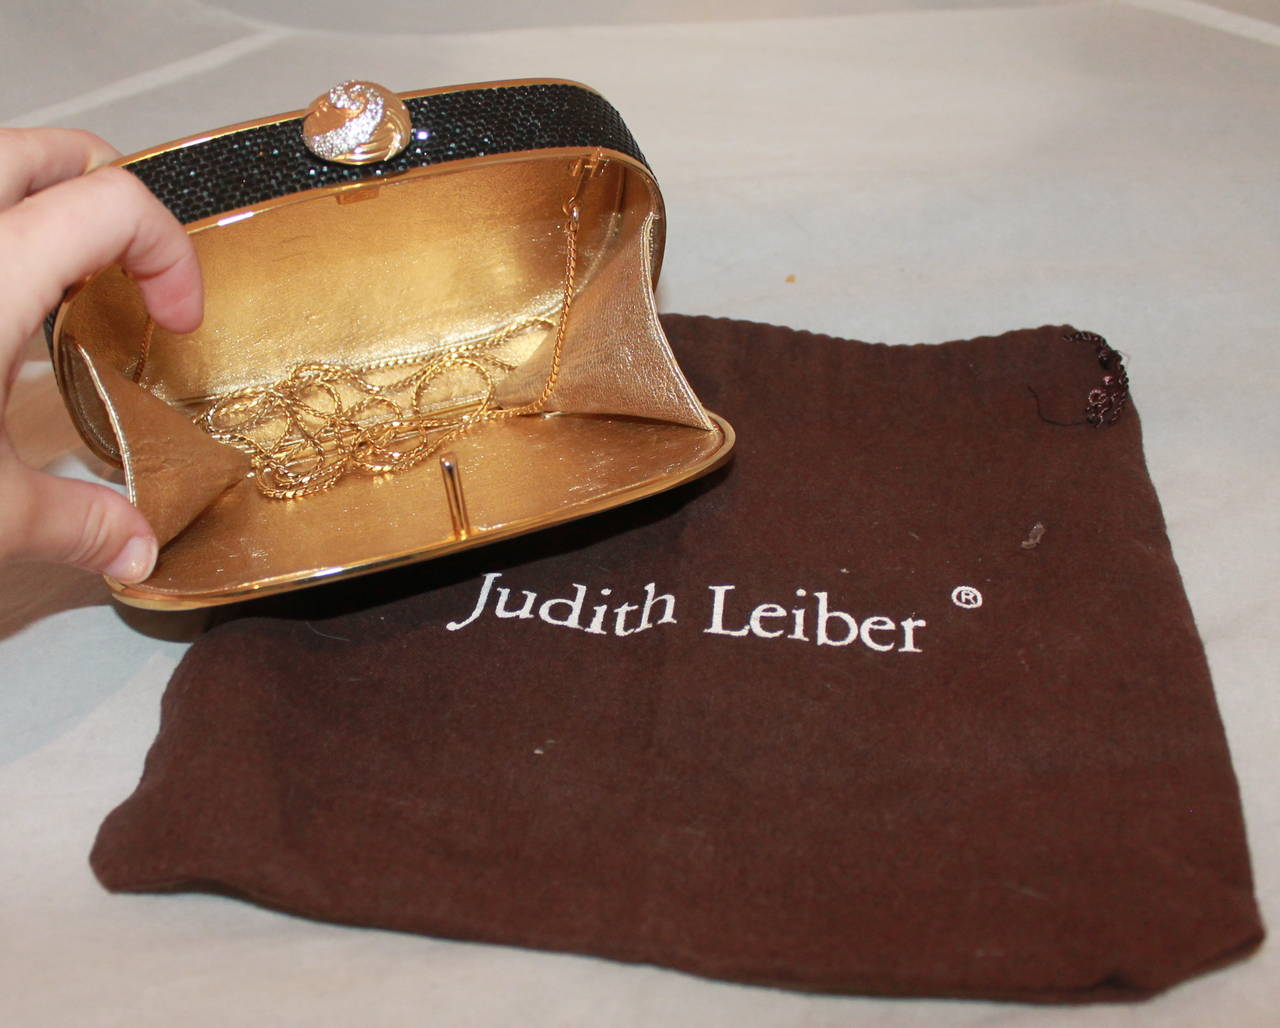 Judith Leiber Vintage Black Crystal Minaudiere For Sale 1